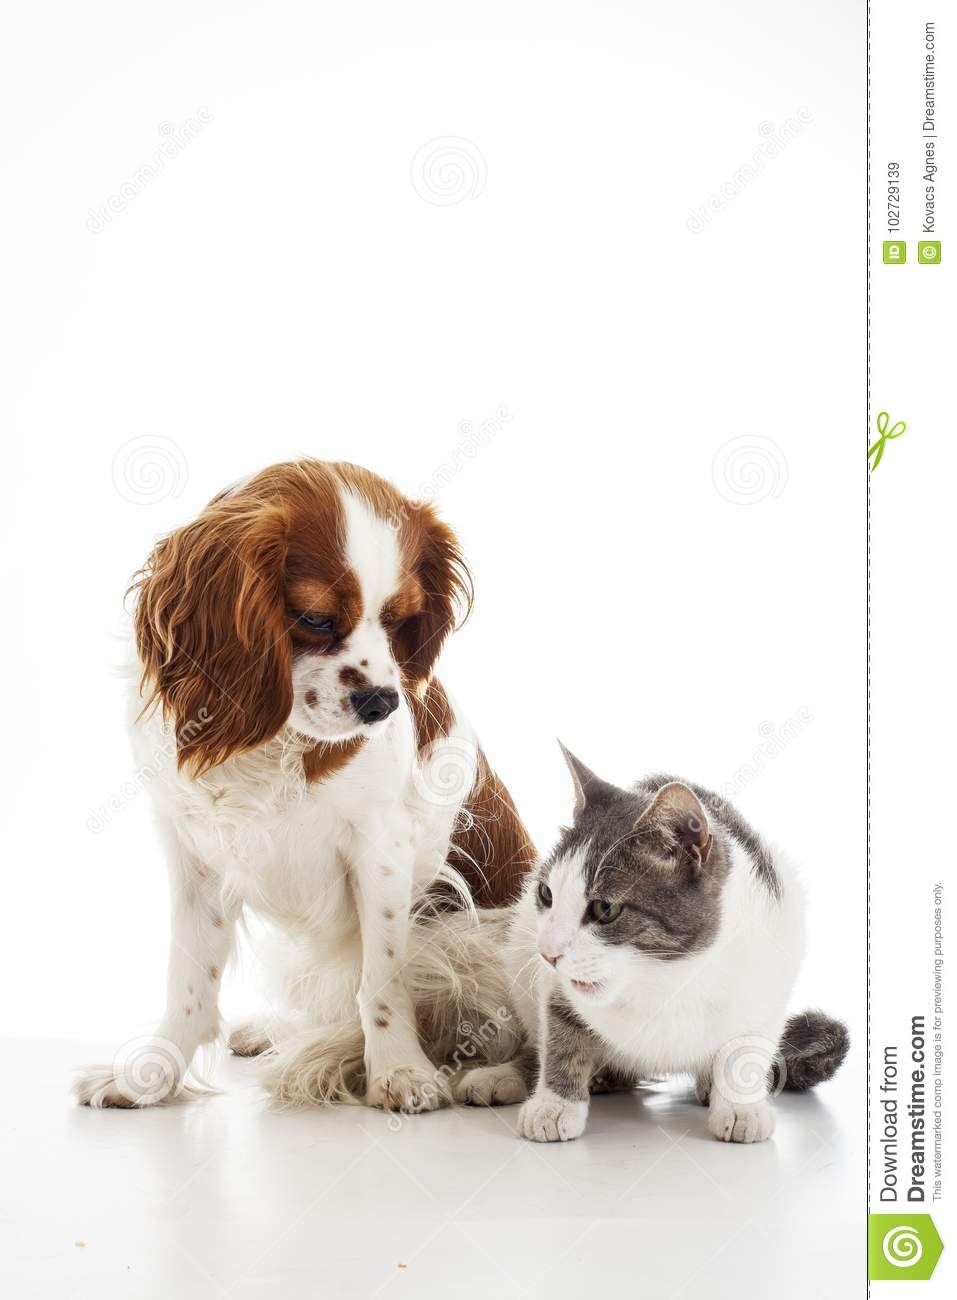 Animal Pet Friends Cat And Dog Friends Puppy And Kitten Together